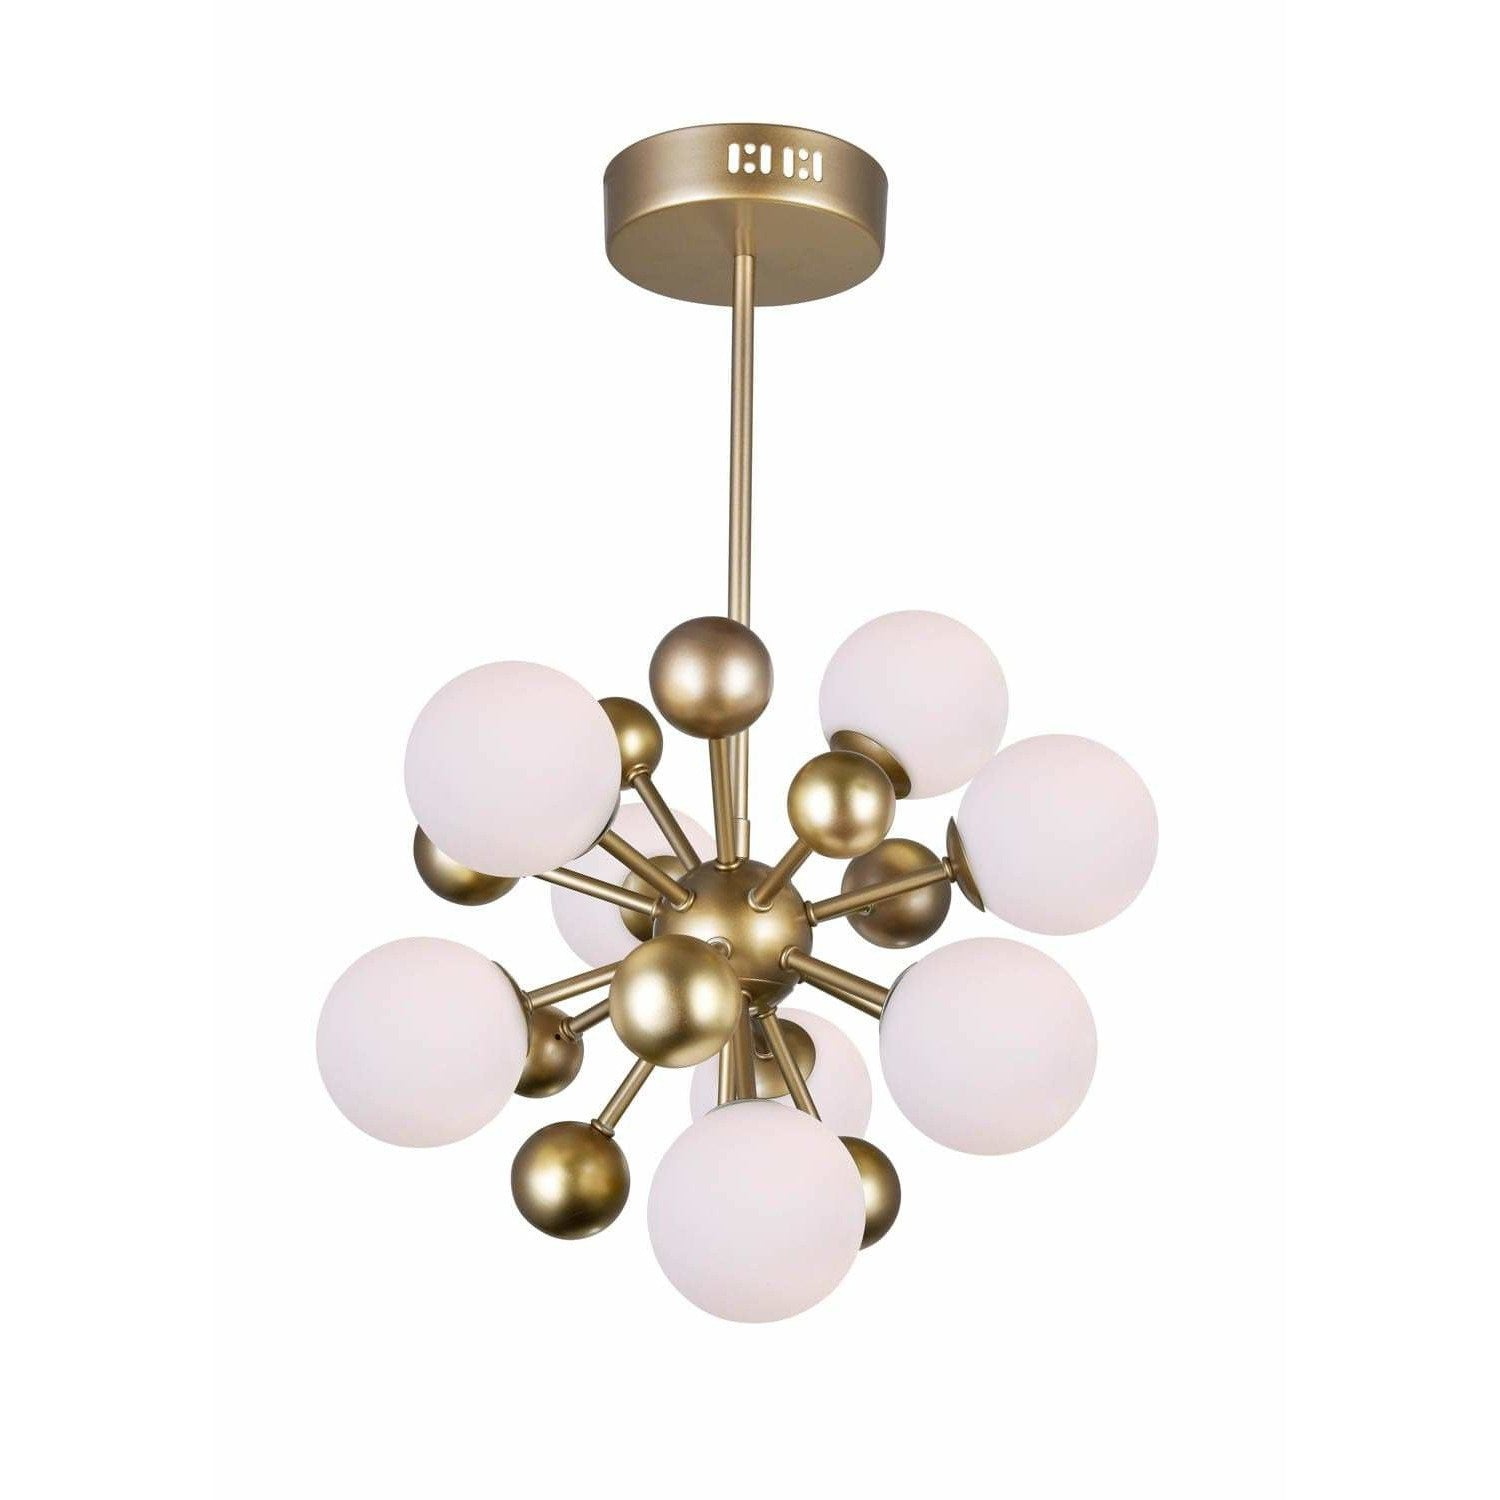 CWI Lighting Chandeliers Sun Gold Element 8 Light Chandelier with Sun Gold Finish by CWI Lighting 1125P16-8-268